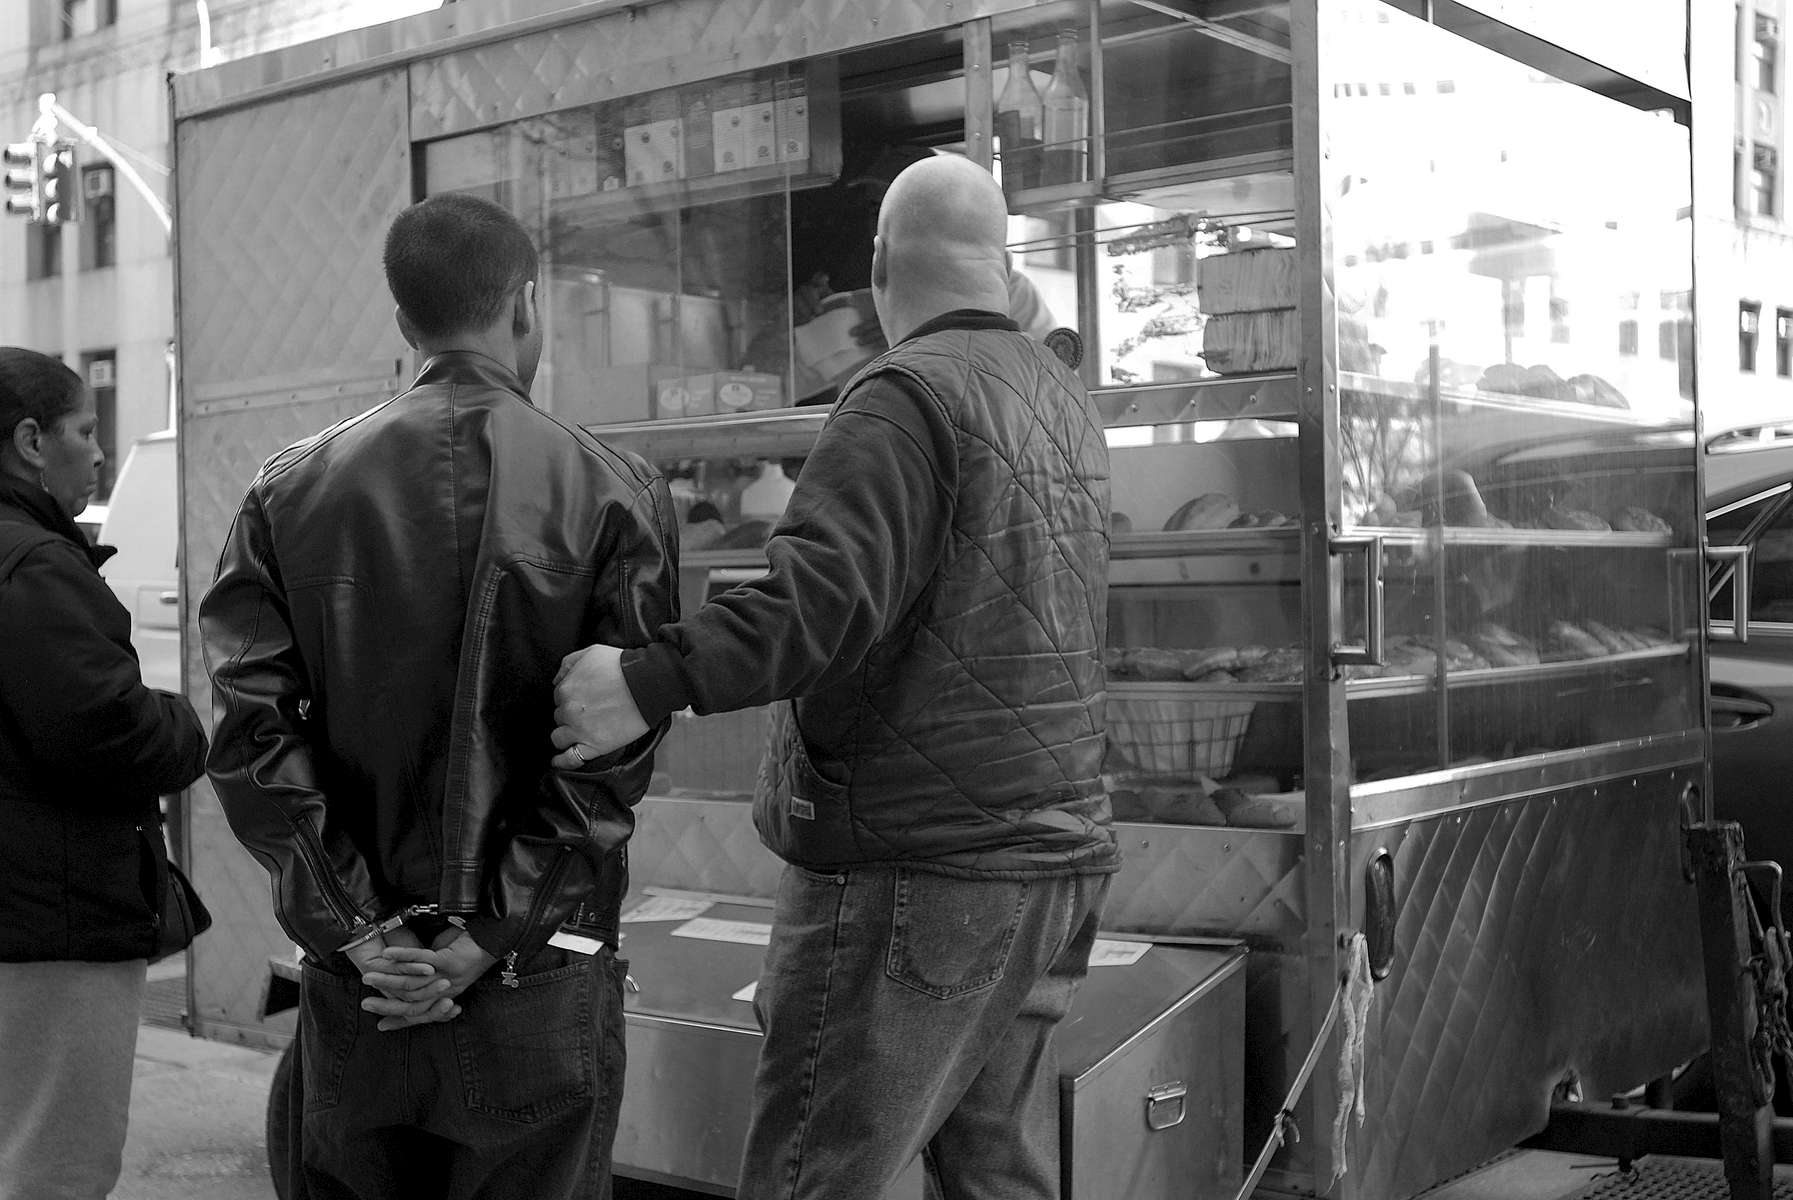 Detective gets coffee before bringing his prisoner into criminal court – 100 Centre Street - March, 2010